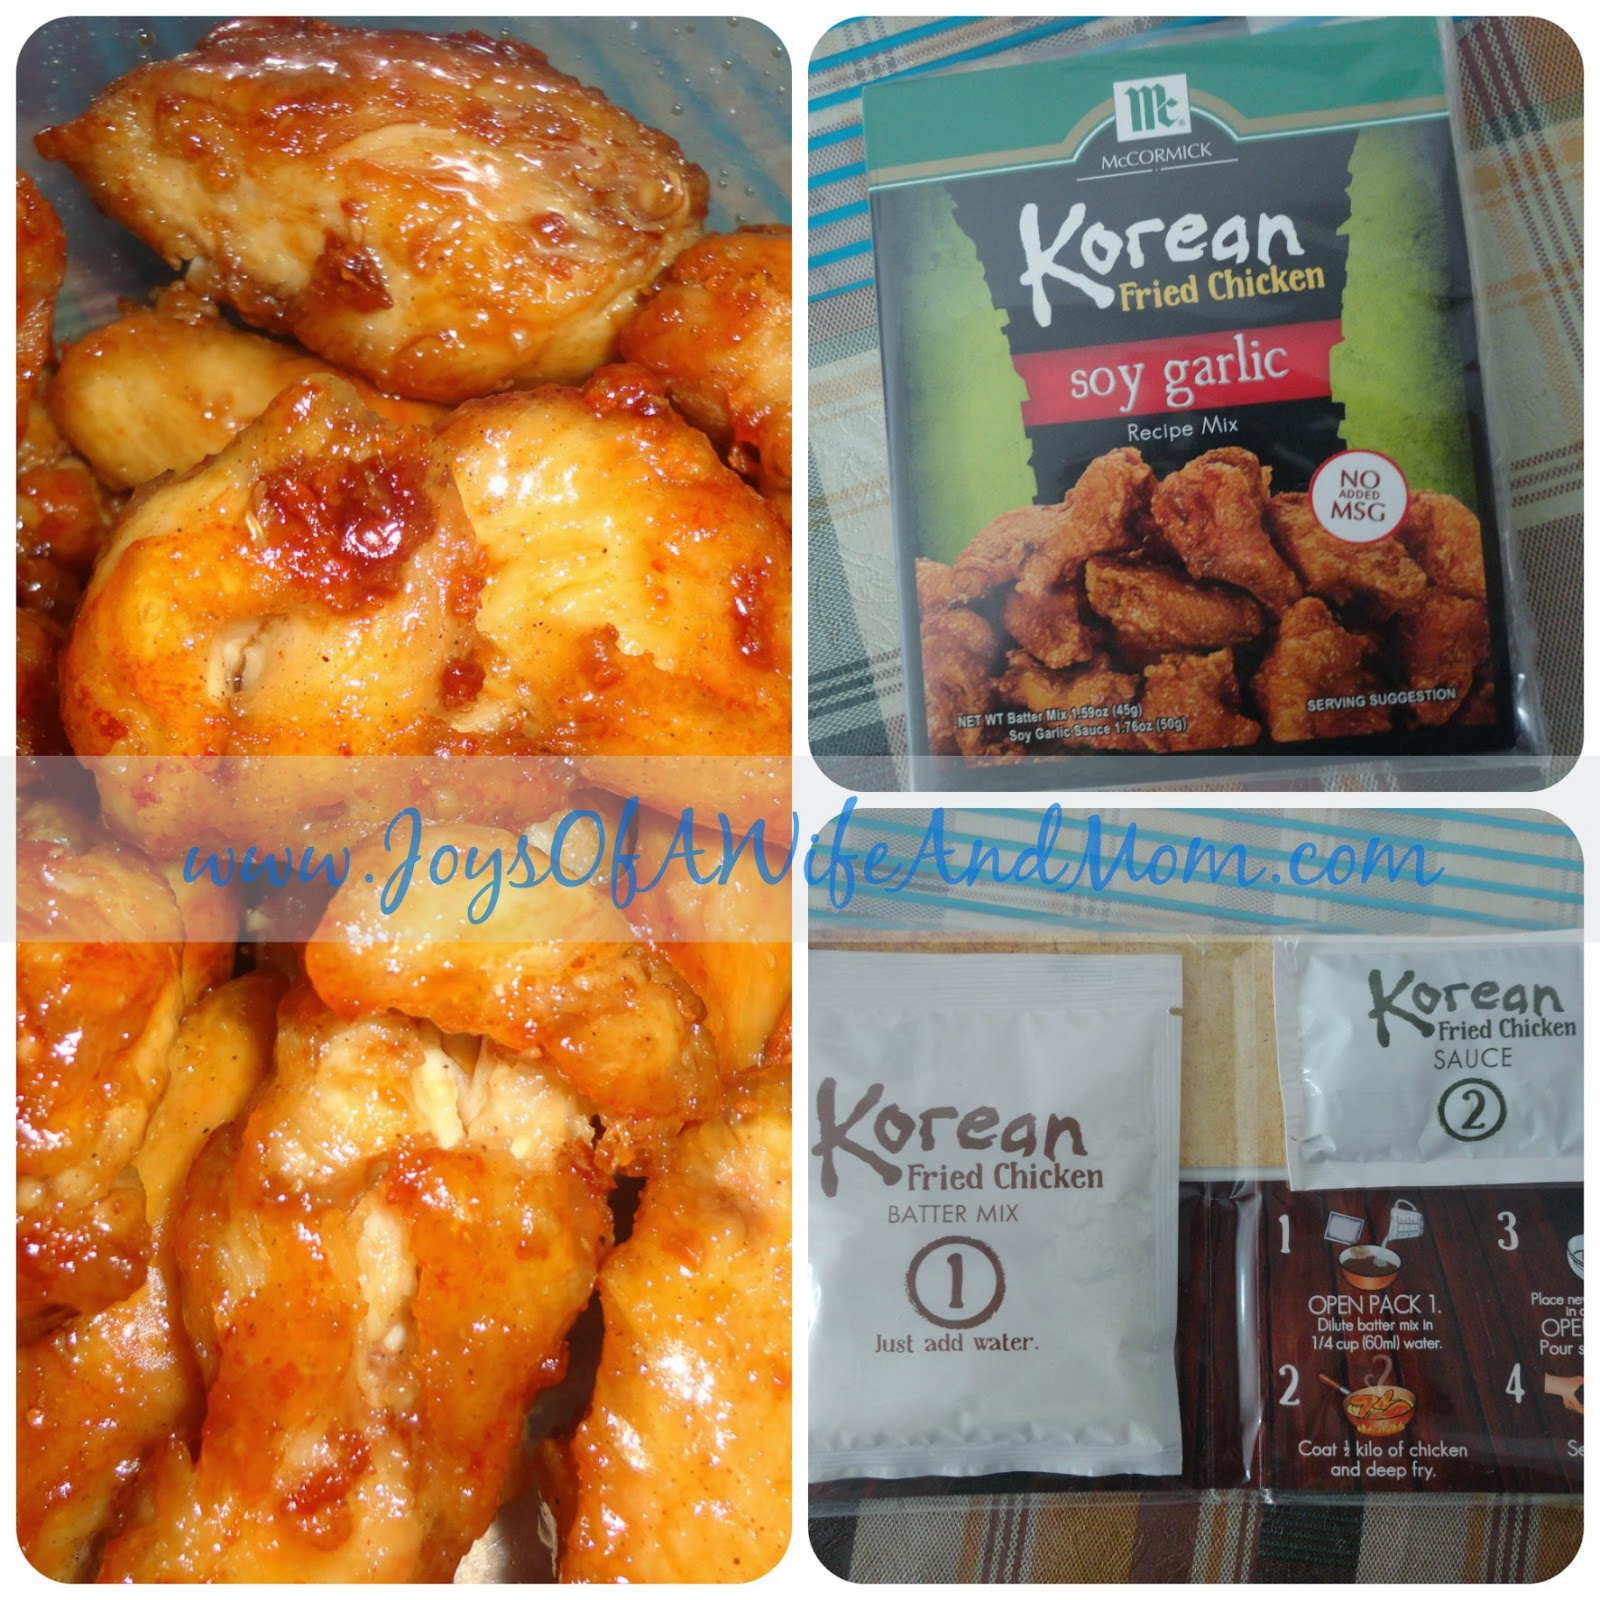 McCormick Korean Fried Chicken in Soy Garlic Flavor